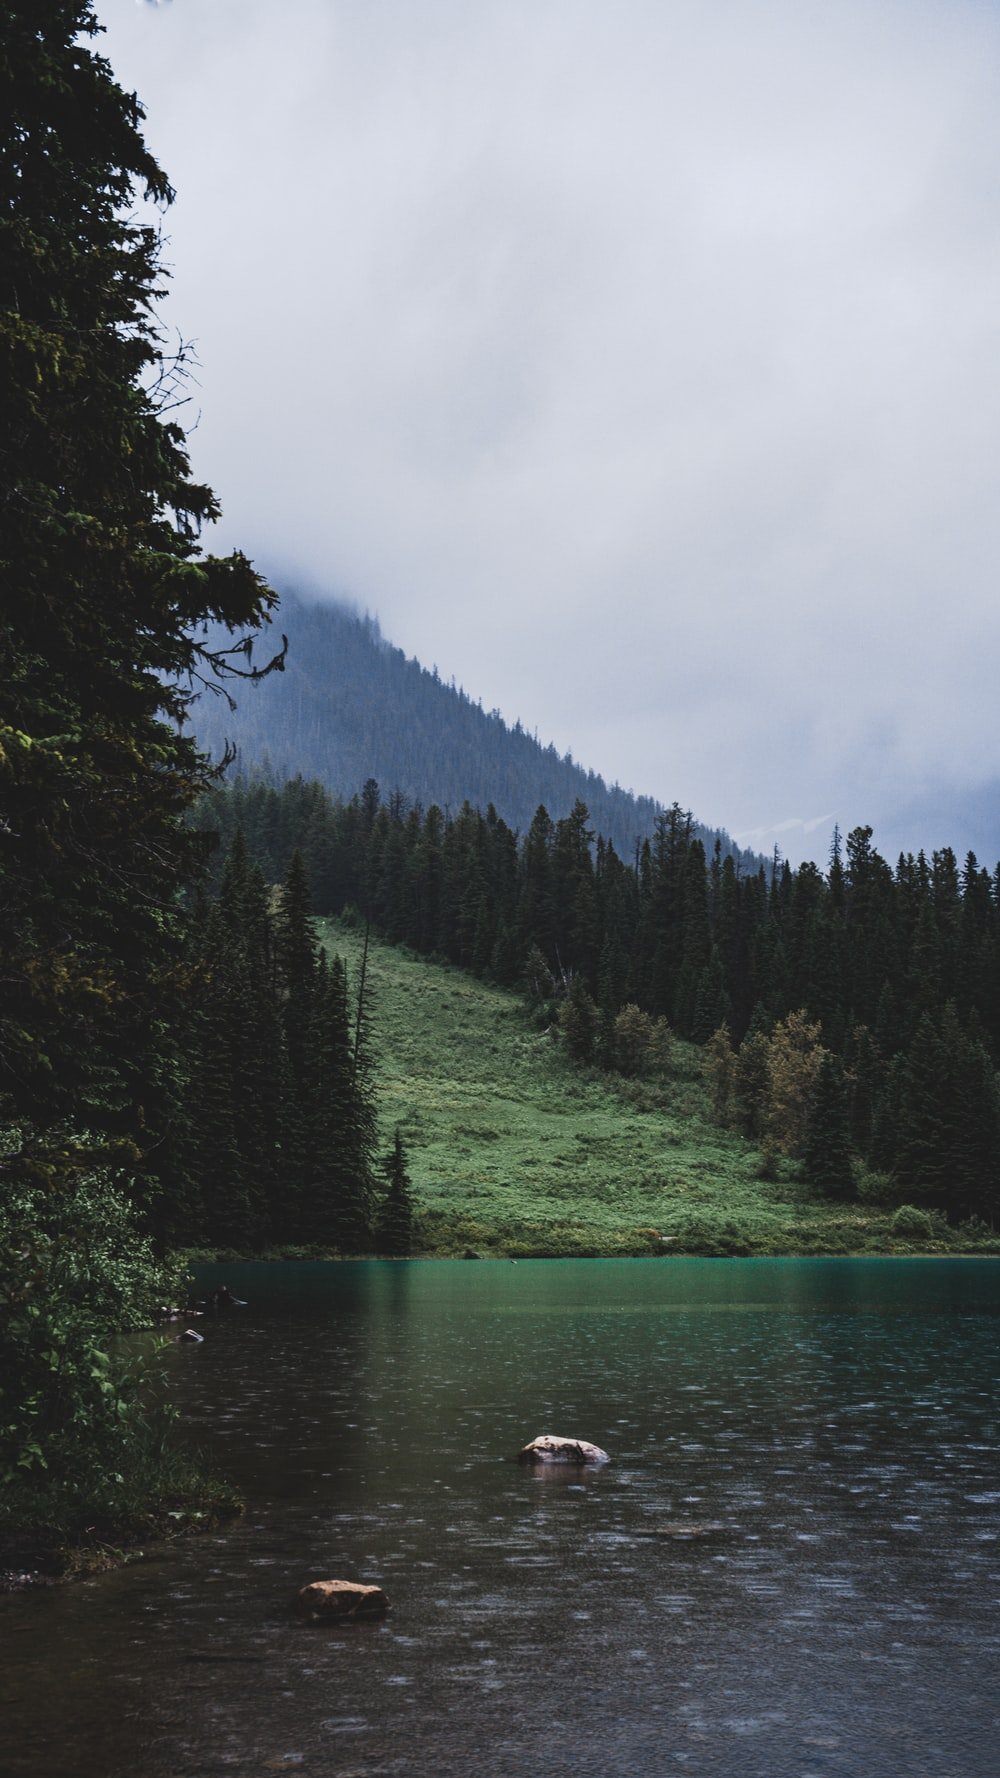 green pine trees beside river under cloudy sky during daytime